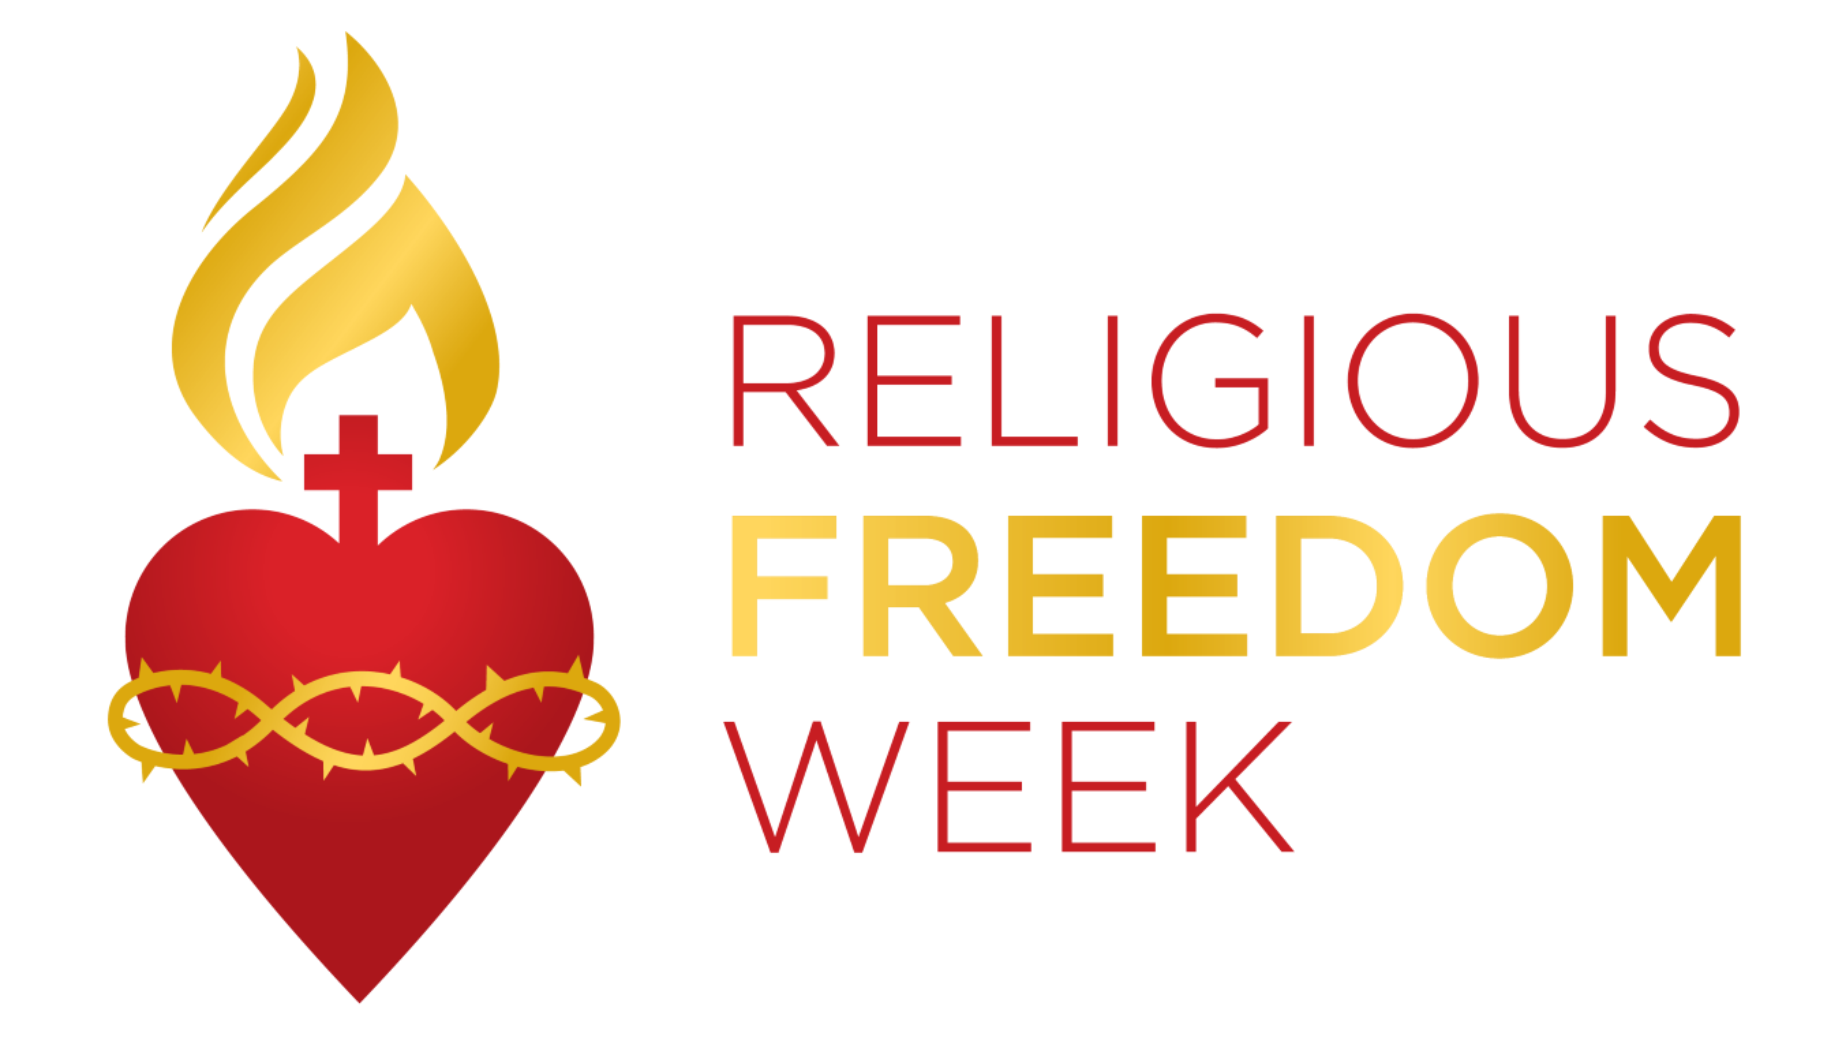 english_religious_freedom_week_2019_web_ad.png